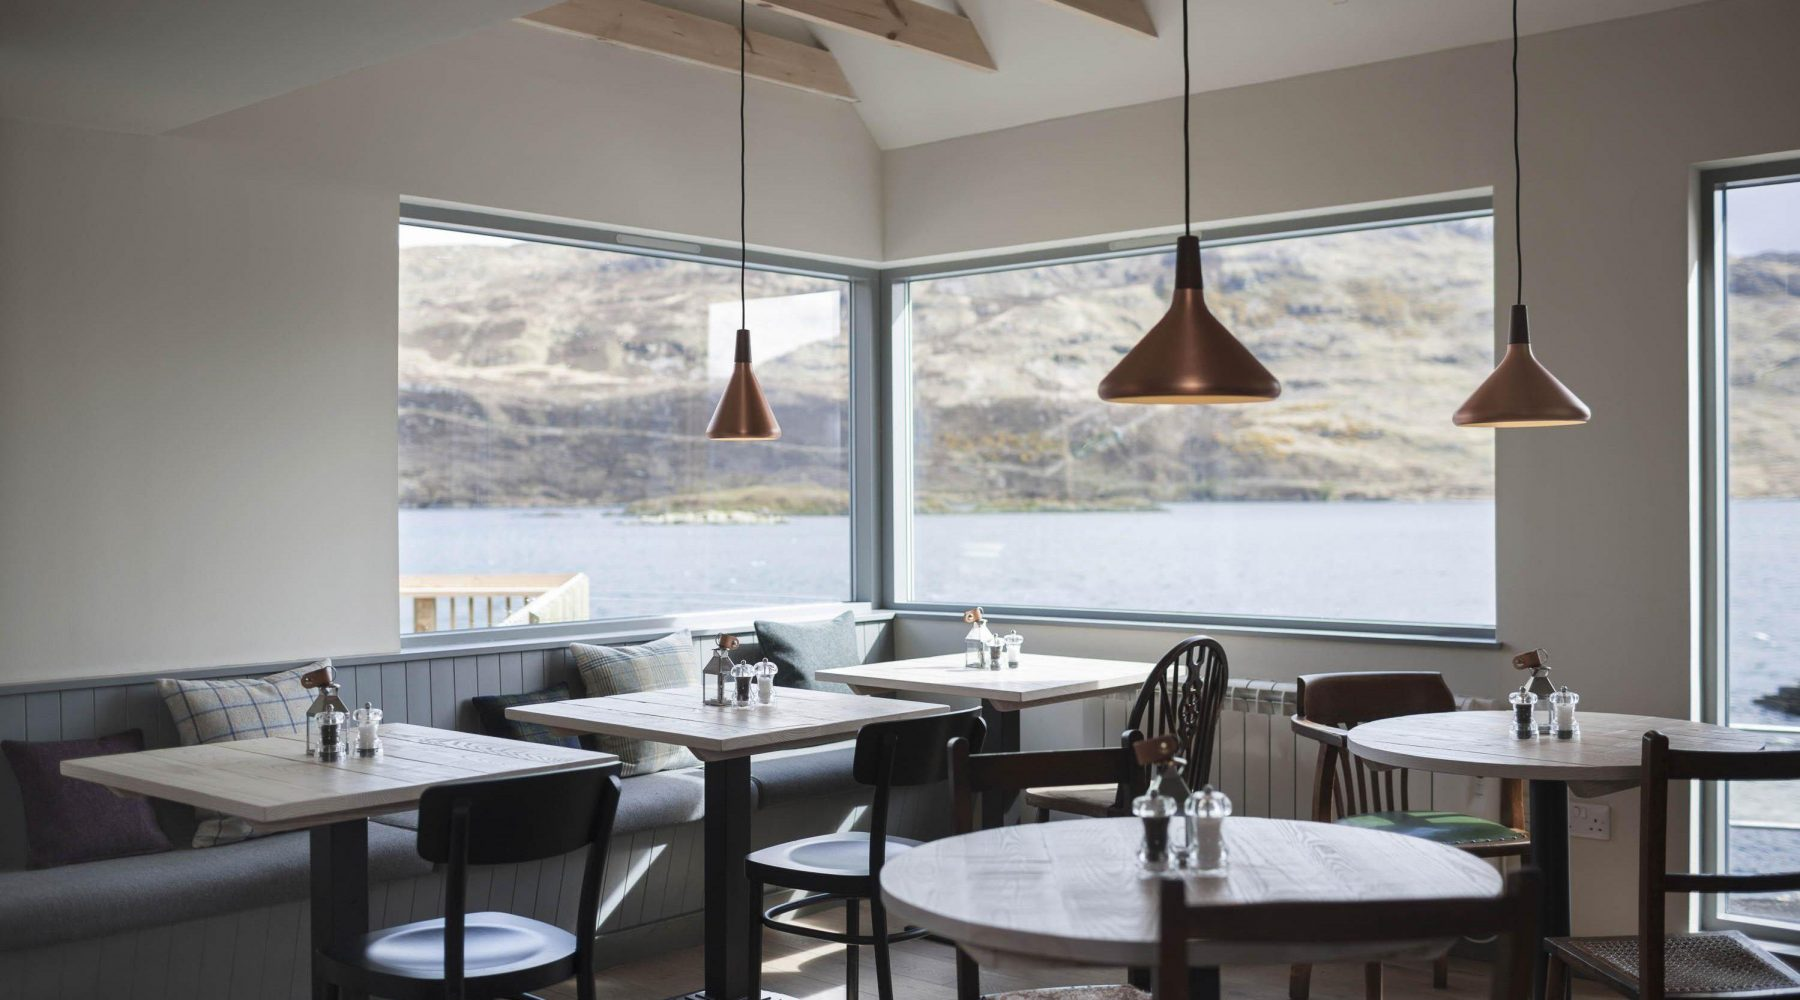 Kylesku Hotel Bar with sea view of Loch Gleann Dubh